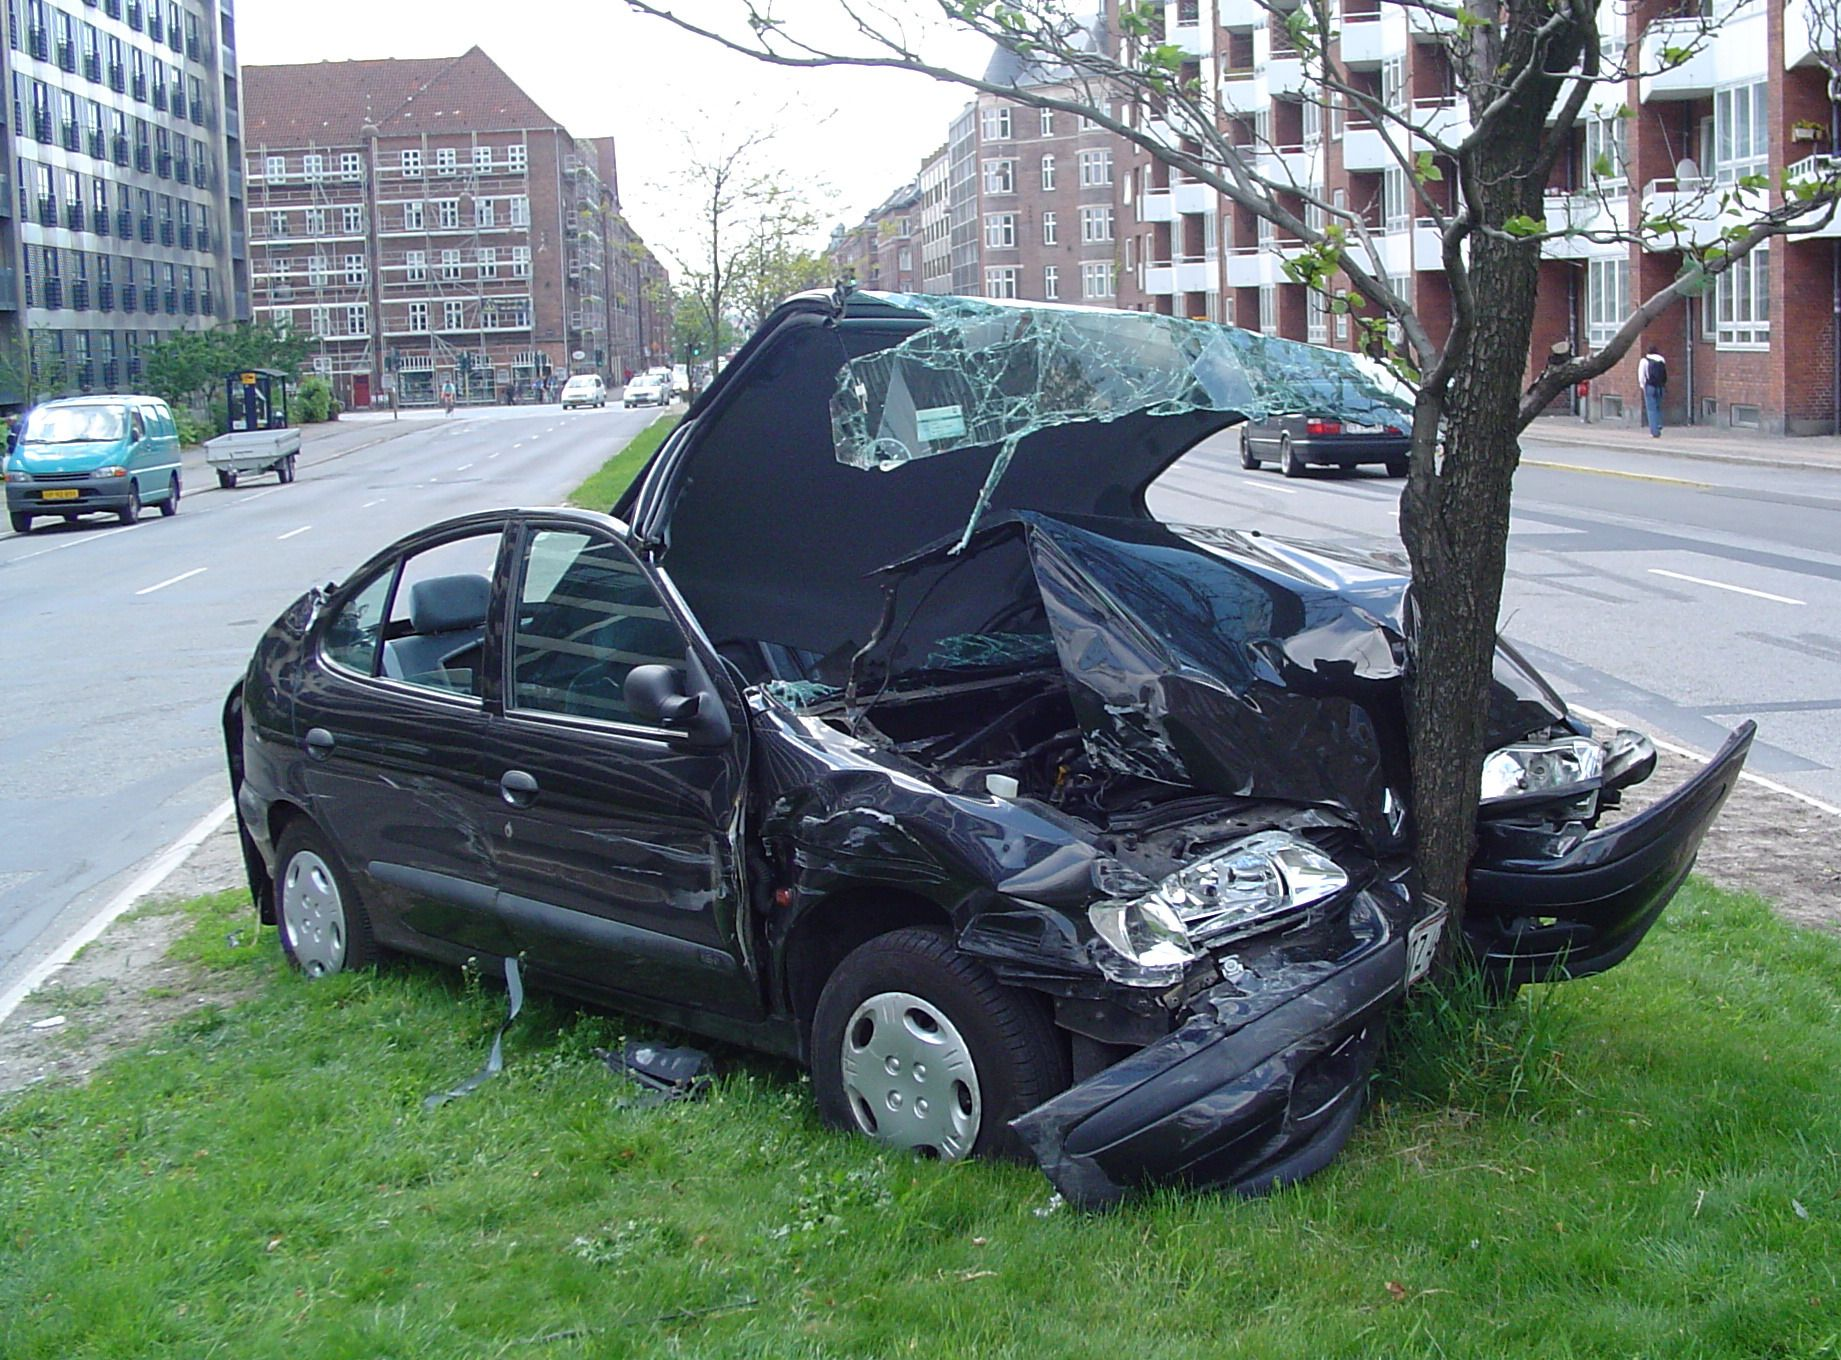 Image result wey dey for accident car picture